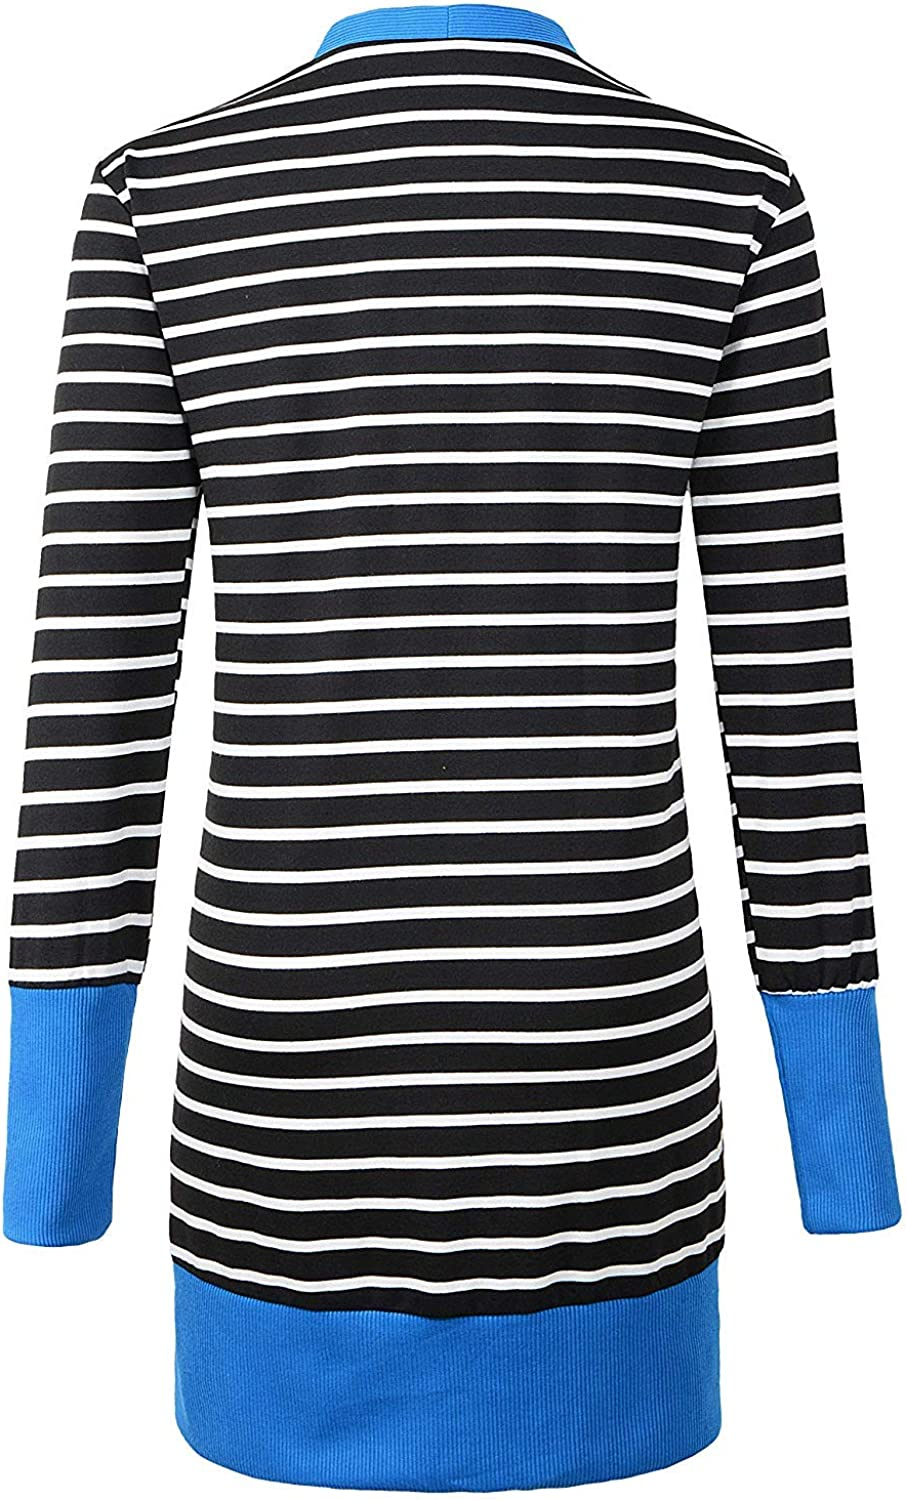 Krissry Womens Fashion Striped Deep V Neck Long Sleeve Contrast Color Cardigans Sweaters